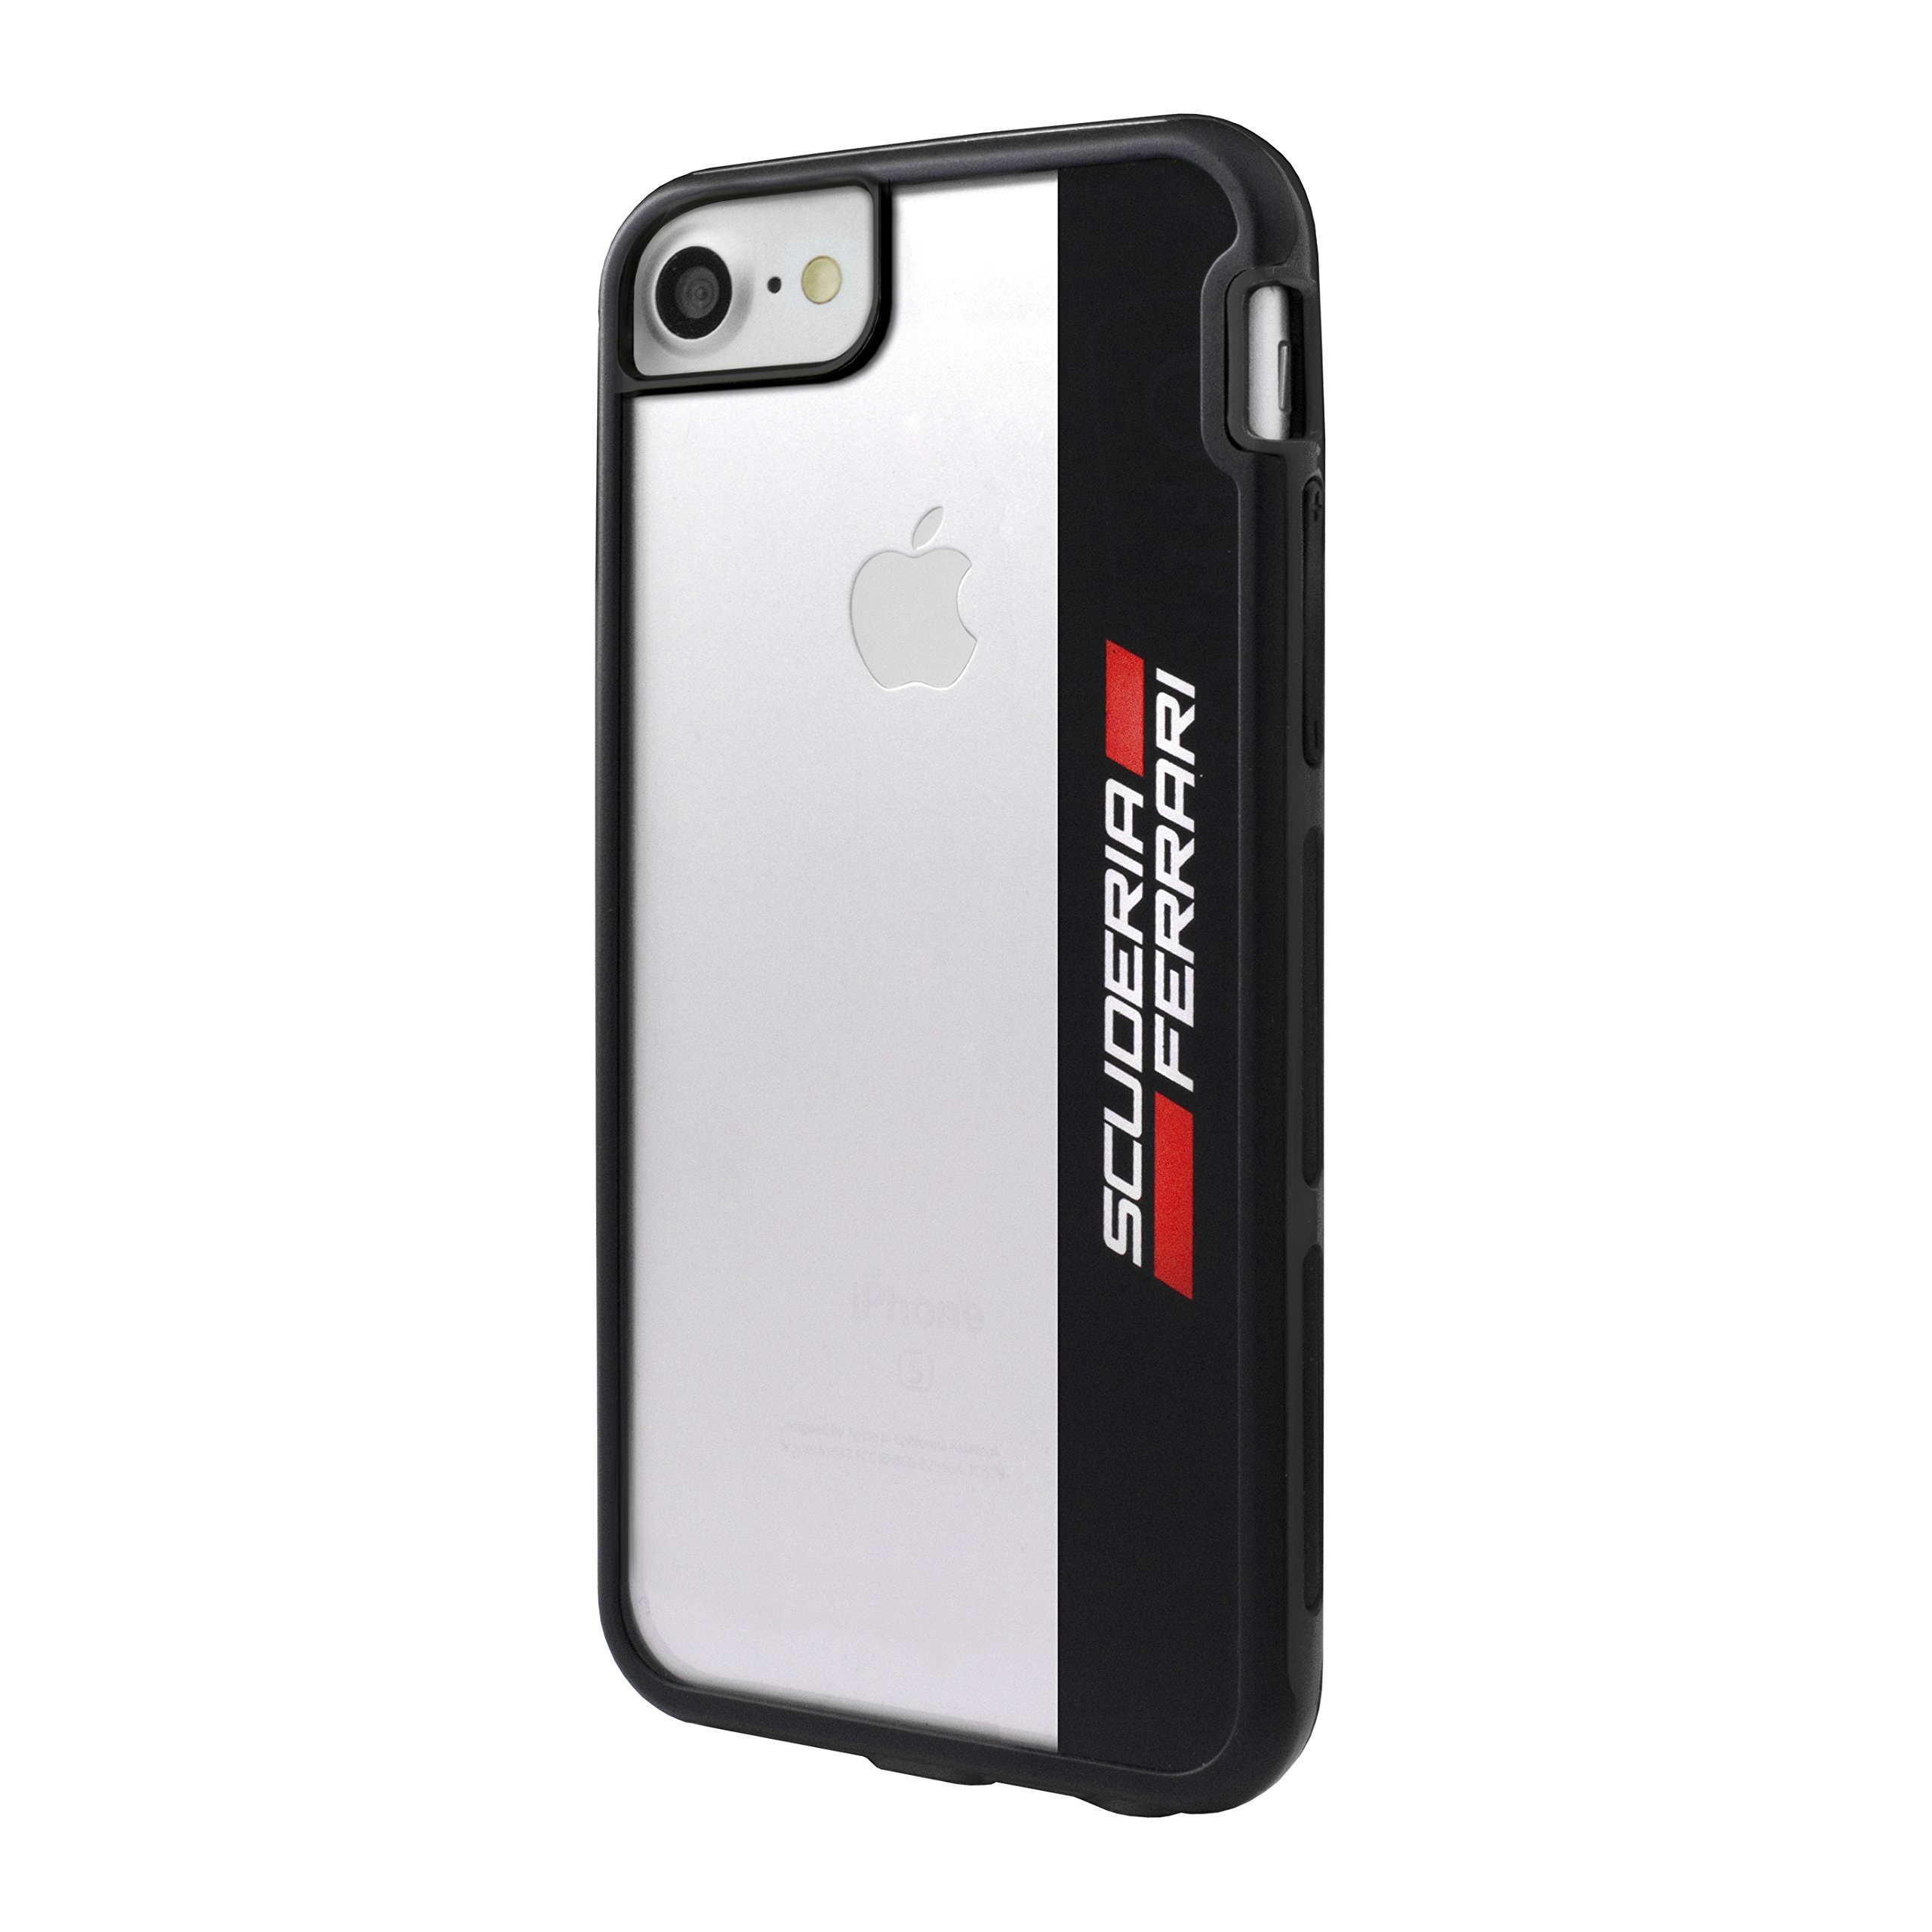 Ferrari Shockproof Hard Case with Racing Shield Design for Apple iPhone 8/7 - Bl